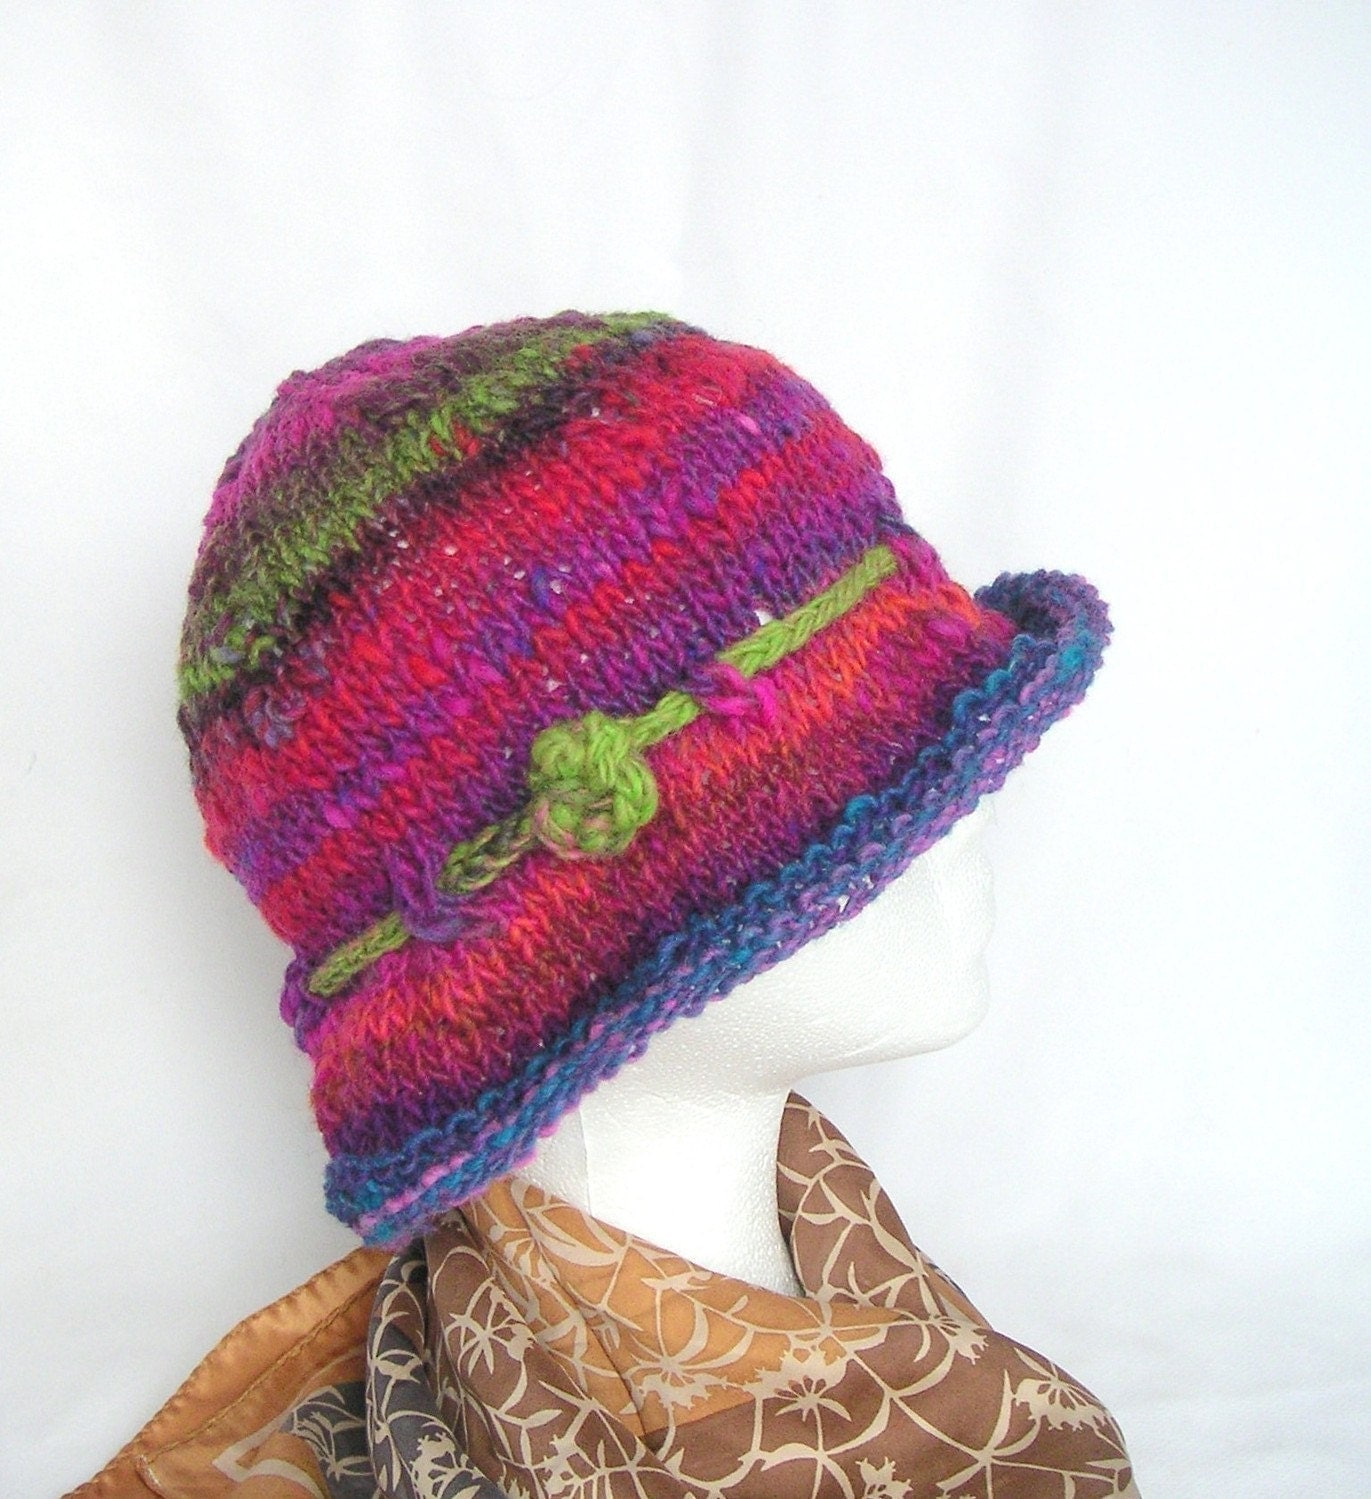 EASY KNITTING PATTERNS FOR HATS